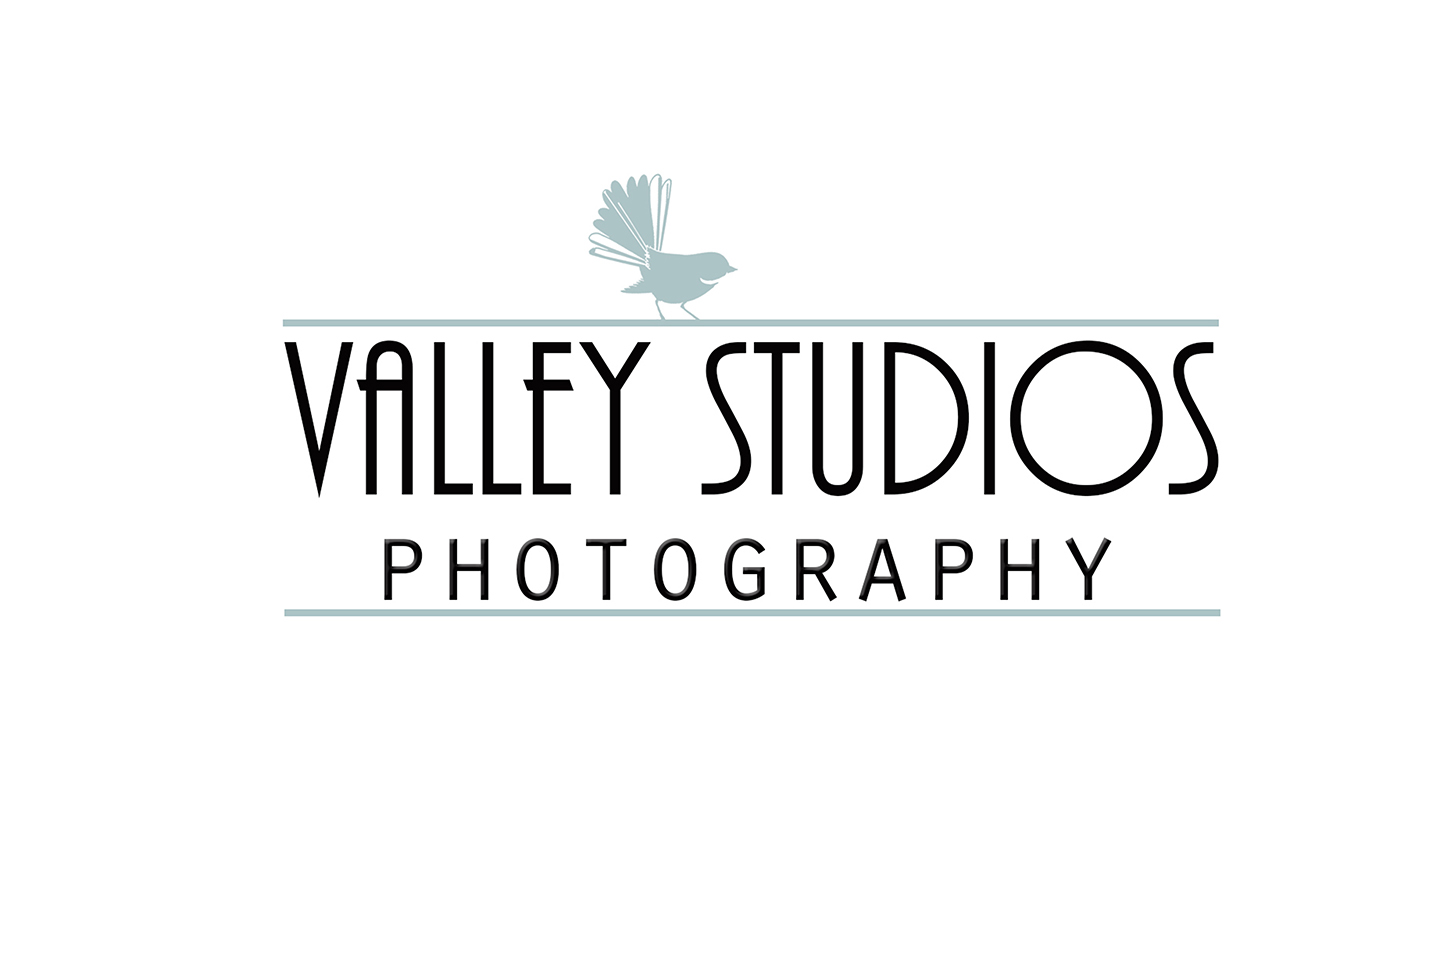 Valley Studios, Photography